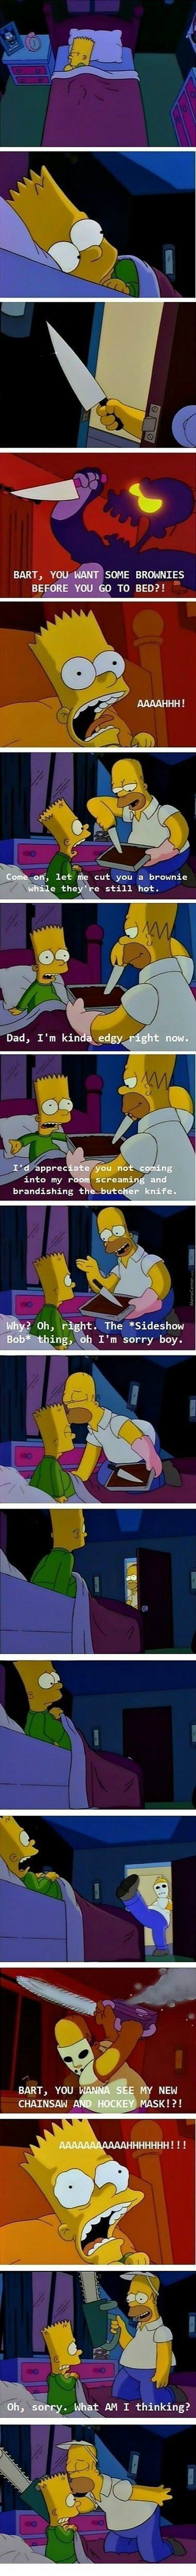 Miss The Old Simpsons